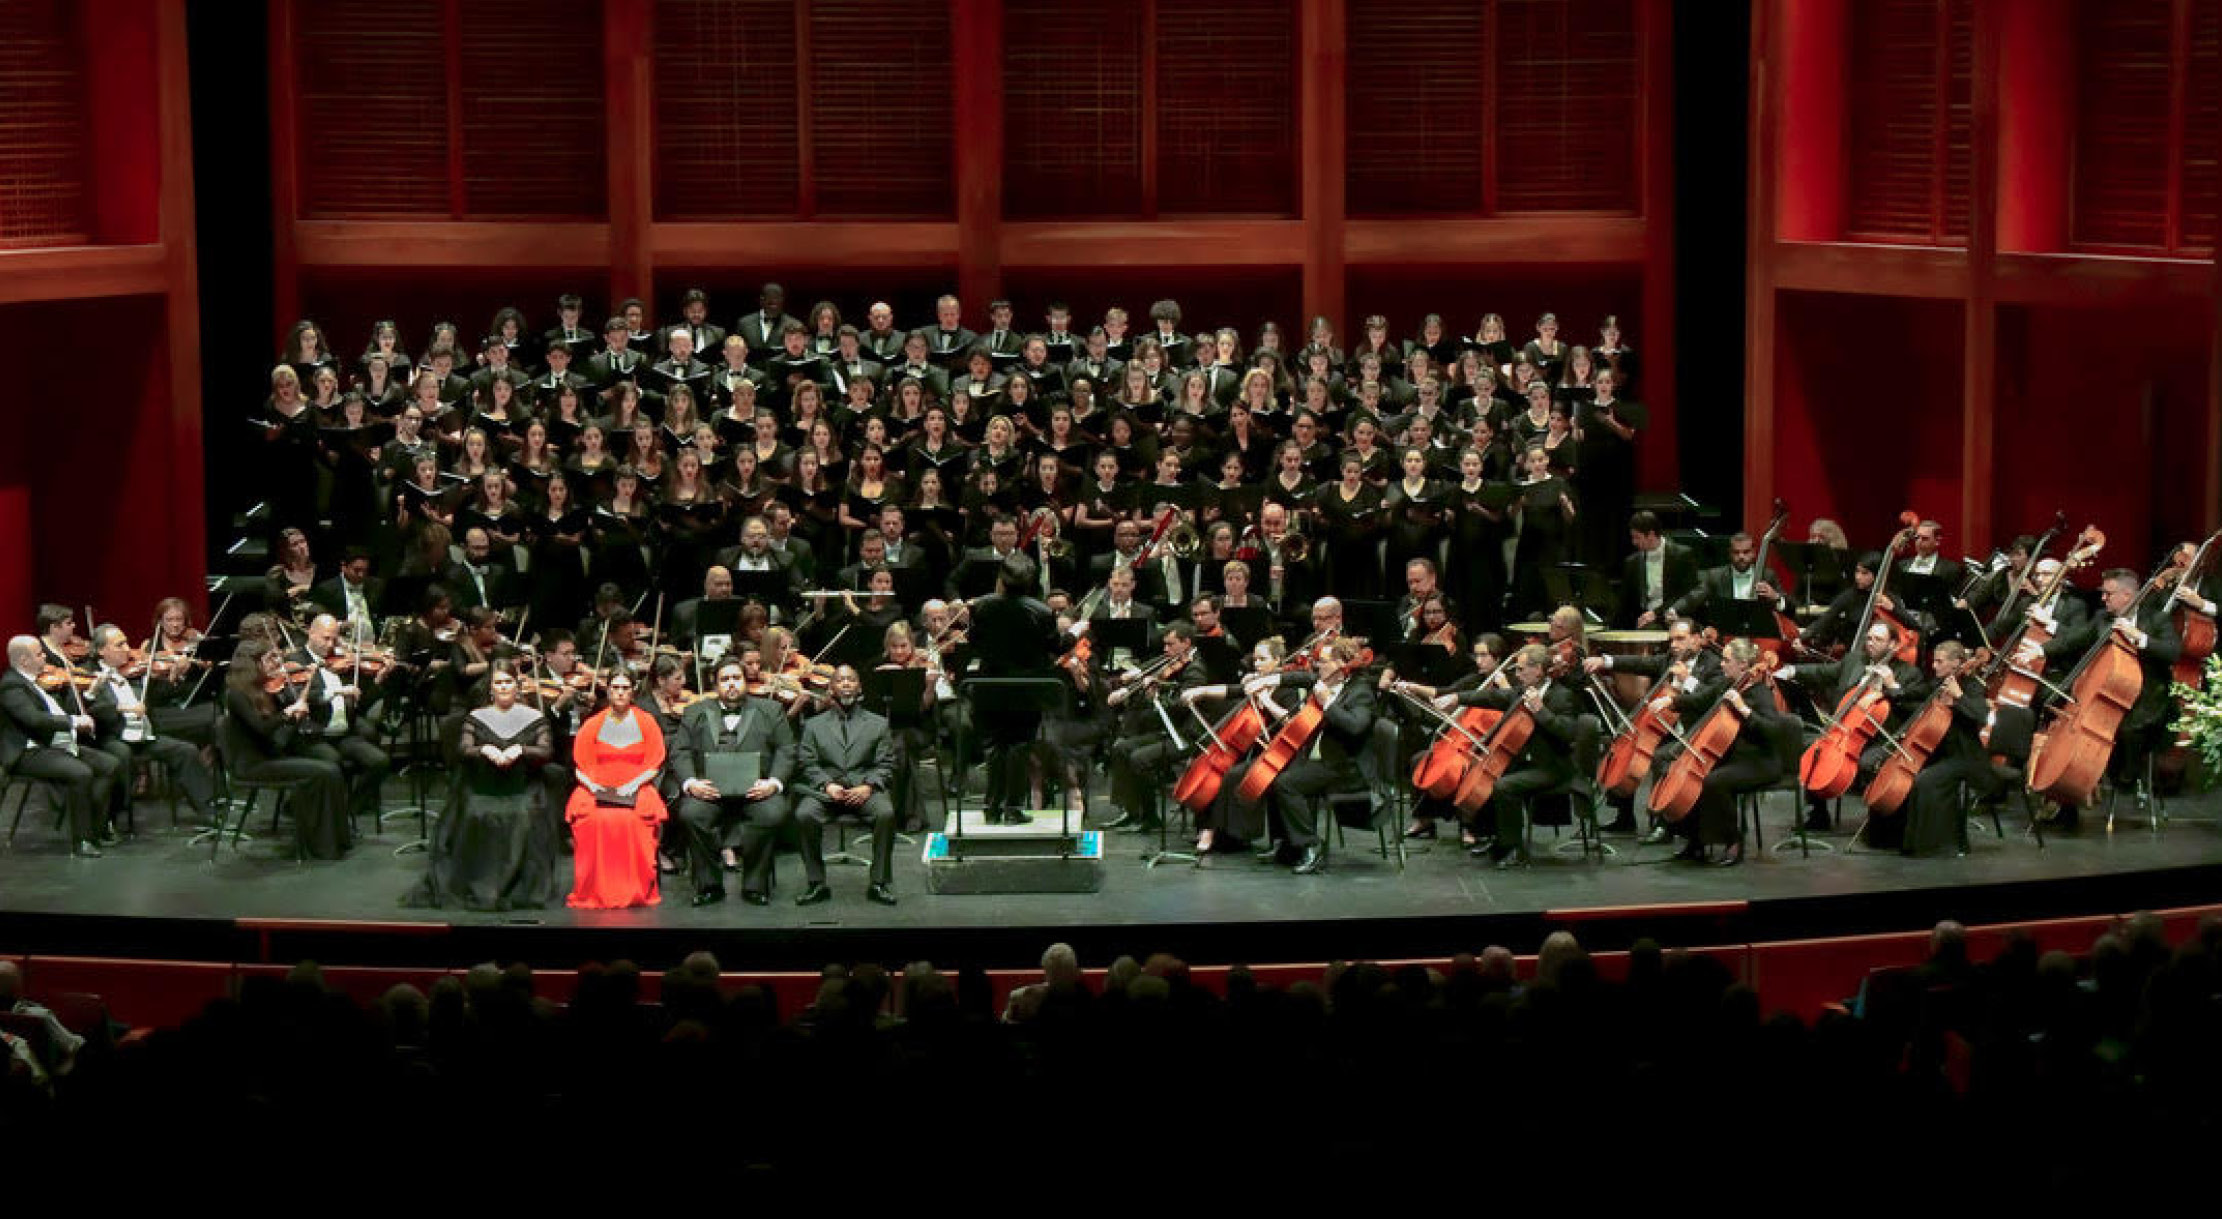 South Florida Symphony Celebrates Beethoven's 250th Birthday With Beethoven Celebration Concert and Gala February 7, 2020 at the Broward Center.